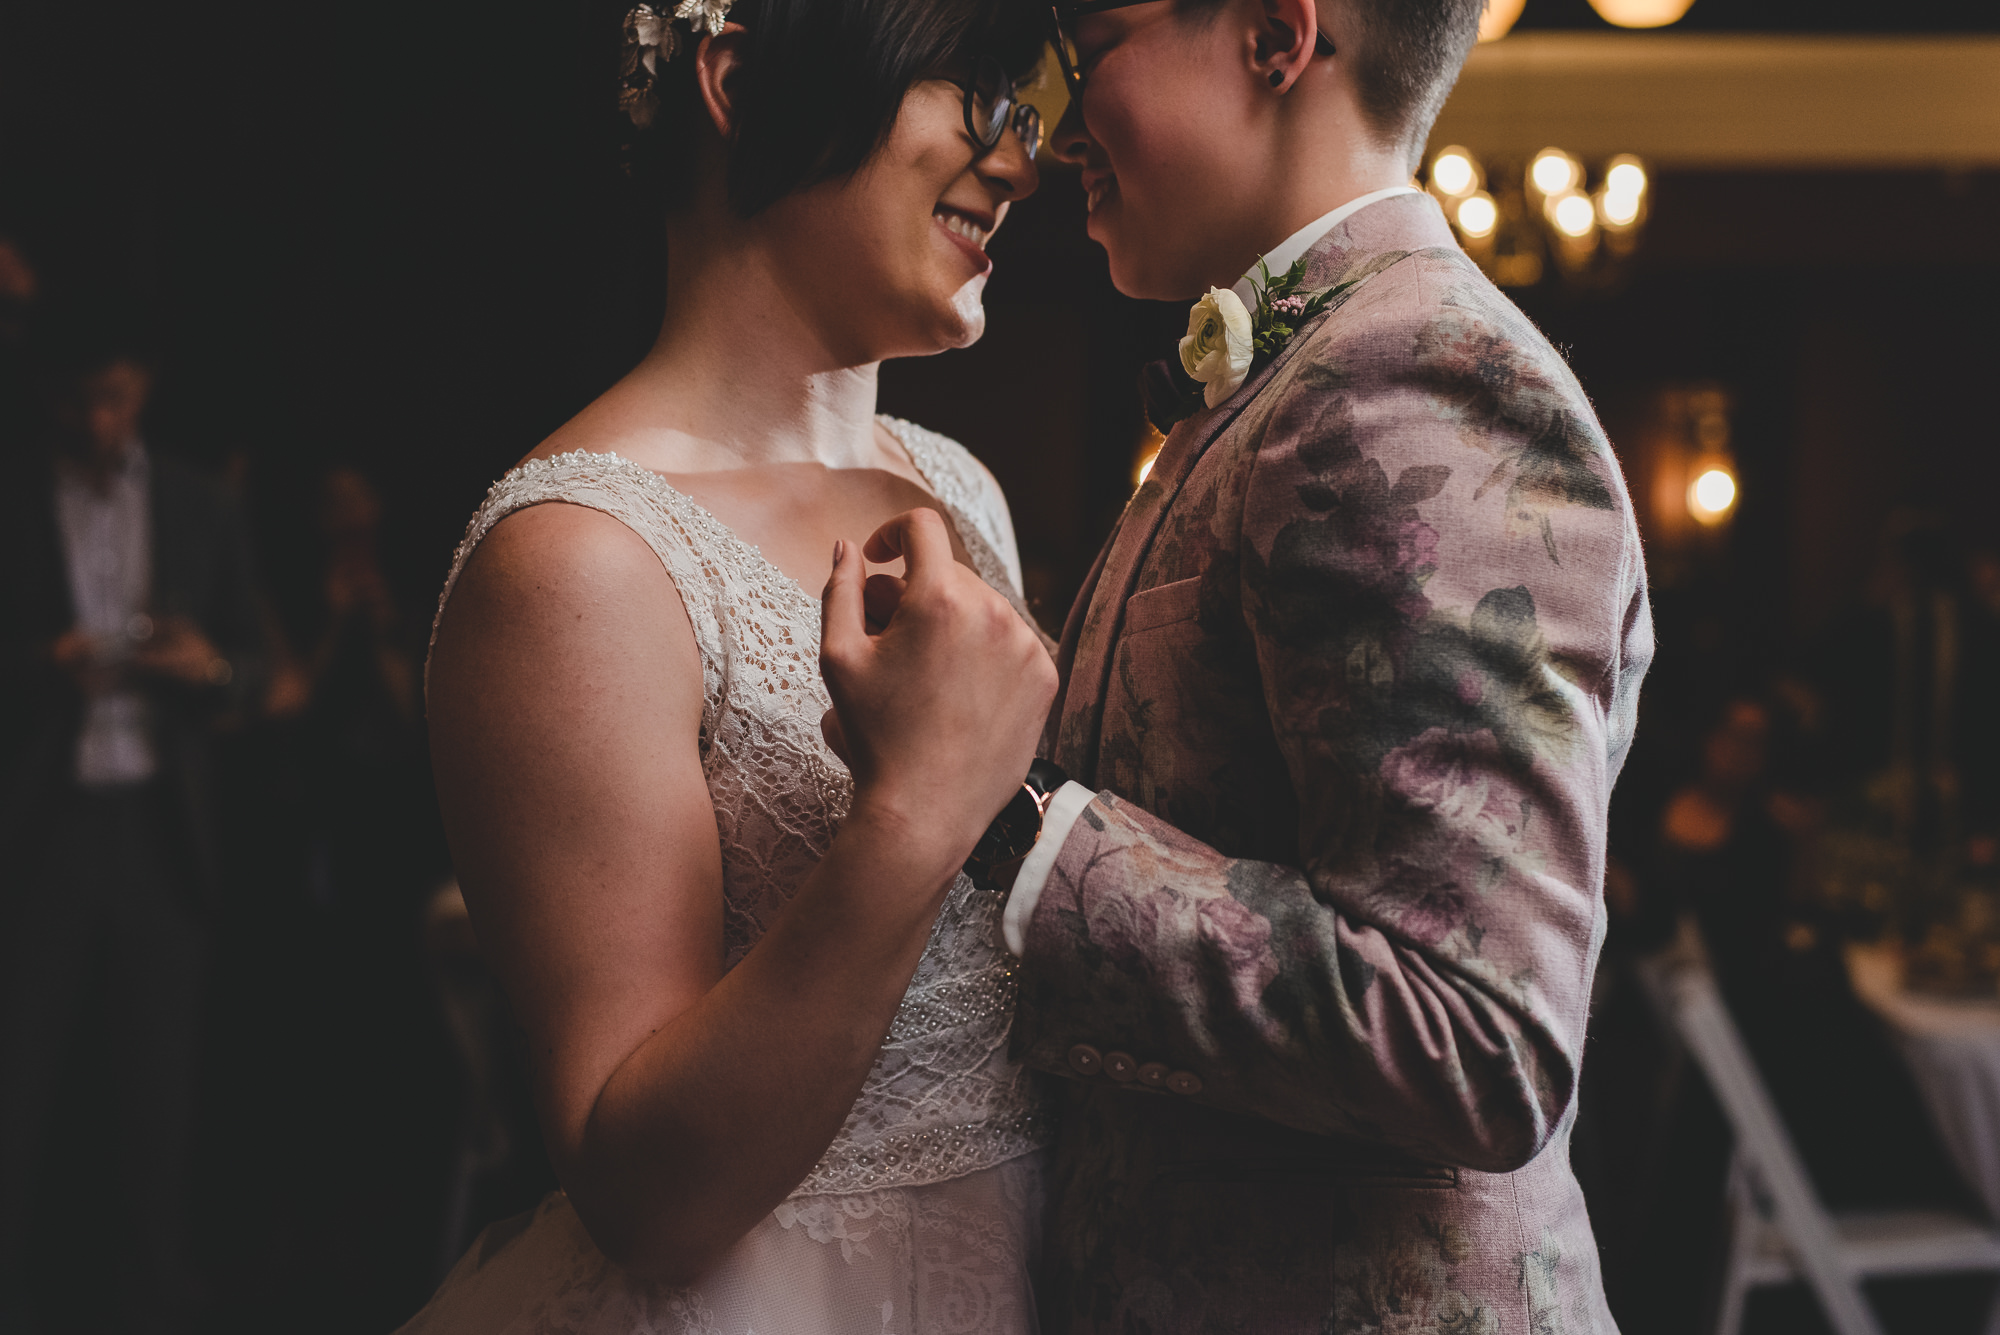 Aberthau Mansion Wedding | Vancouver LGBTQ Wedding Photographer